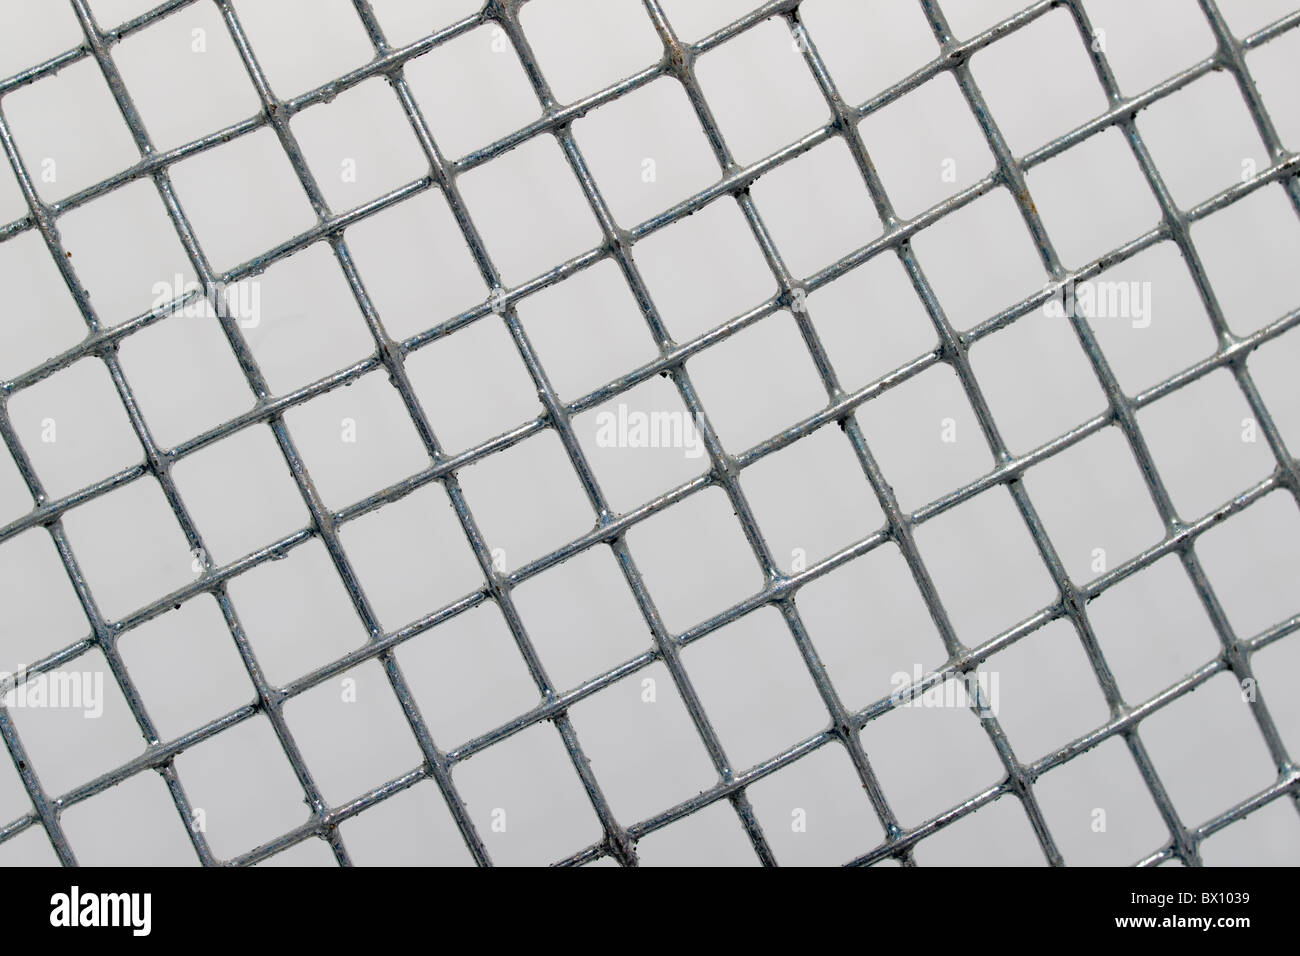 Galvanized screen close up - Stock Image